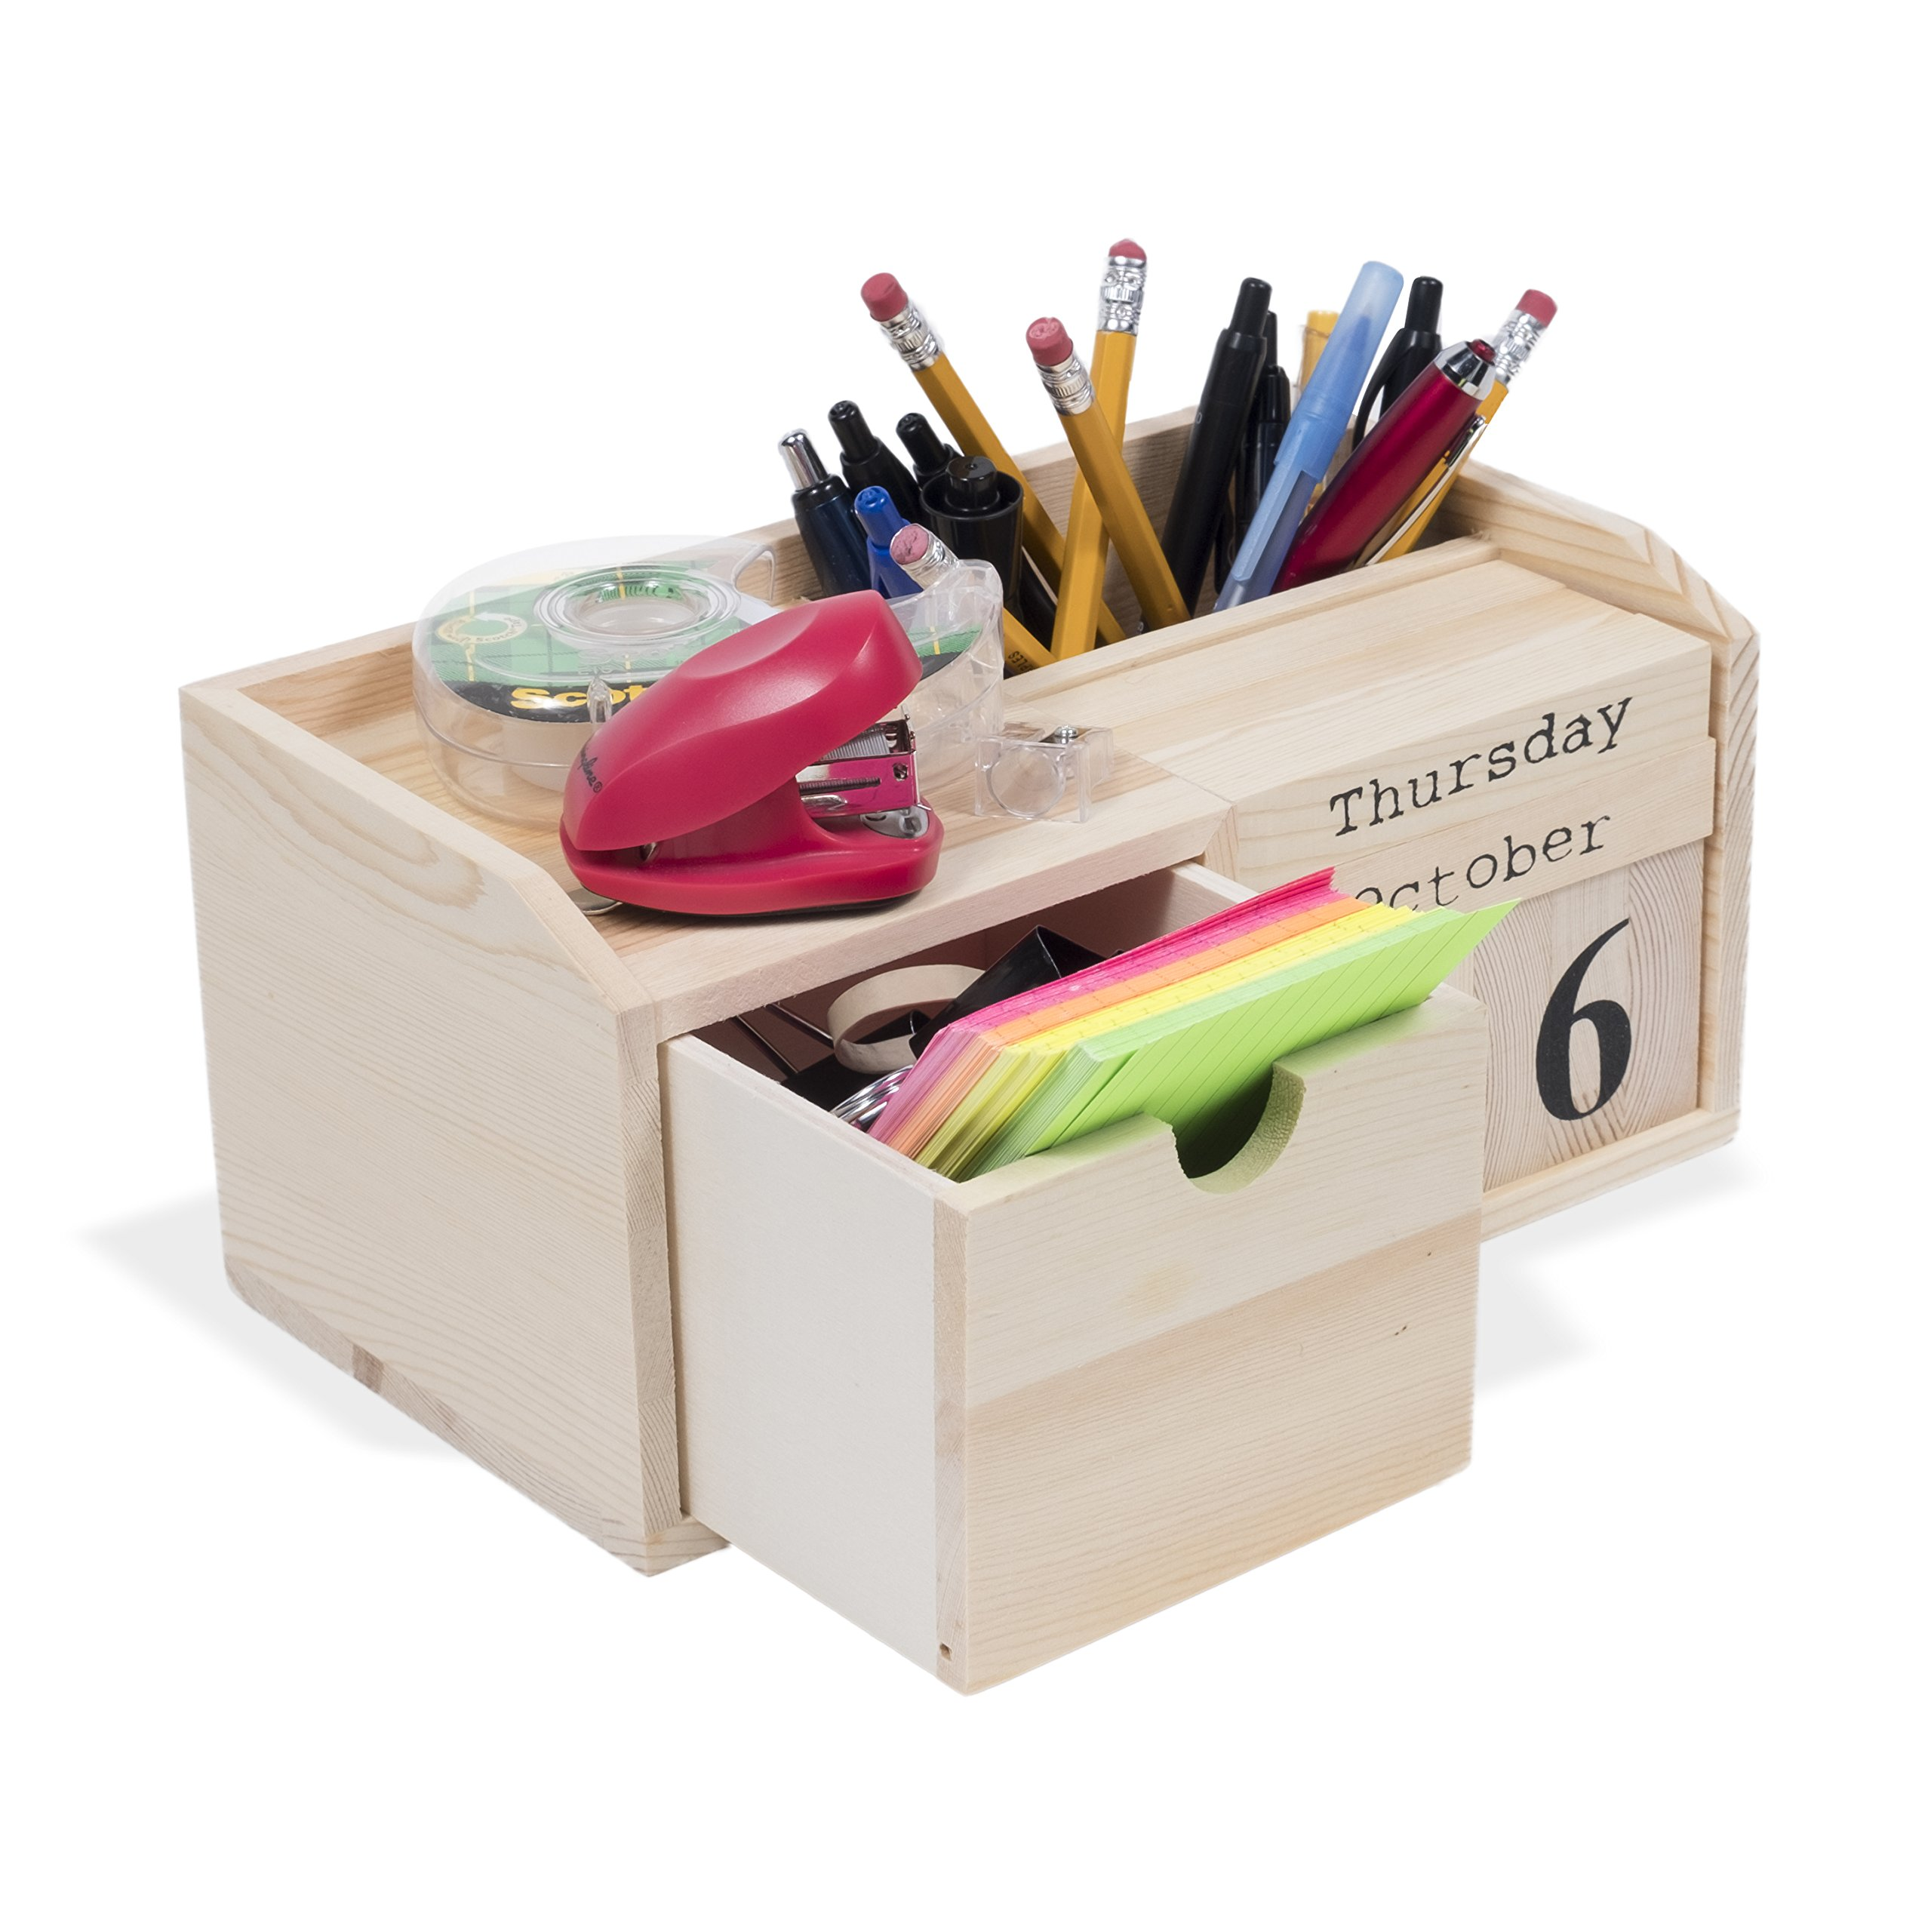 Kid's School Supplies Organizer with Interchangeable Block Calendar Pencil Holder DIY Projects Unfinished Wood Natural